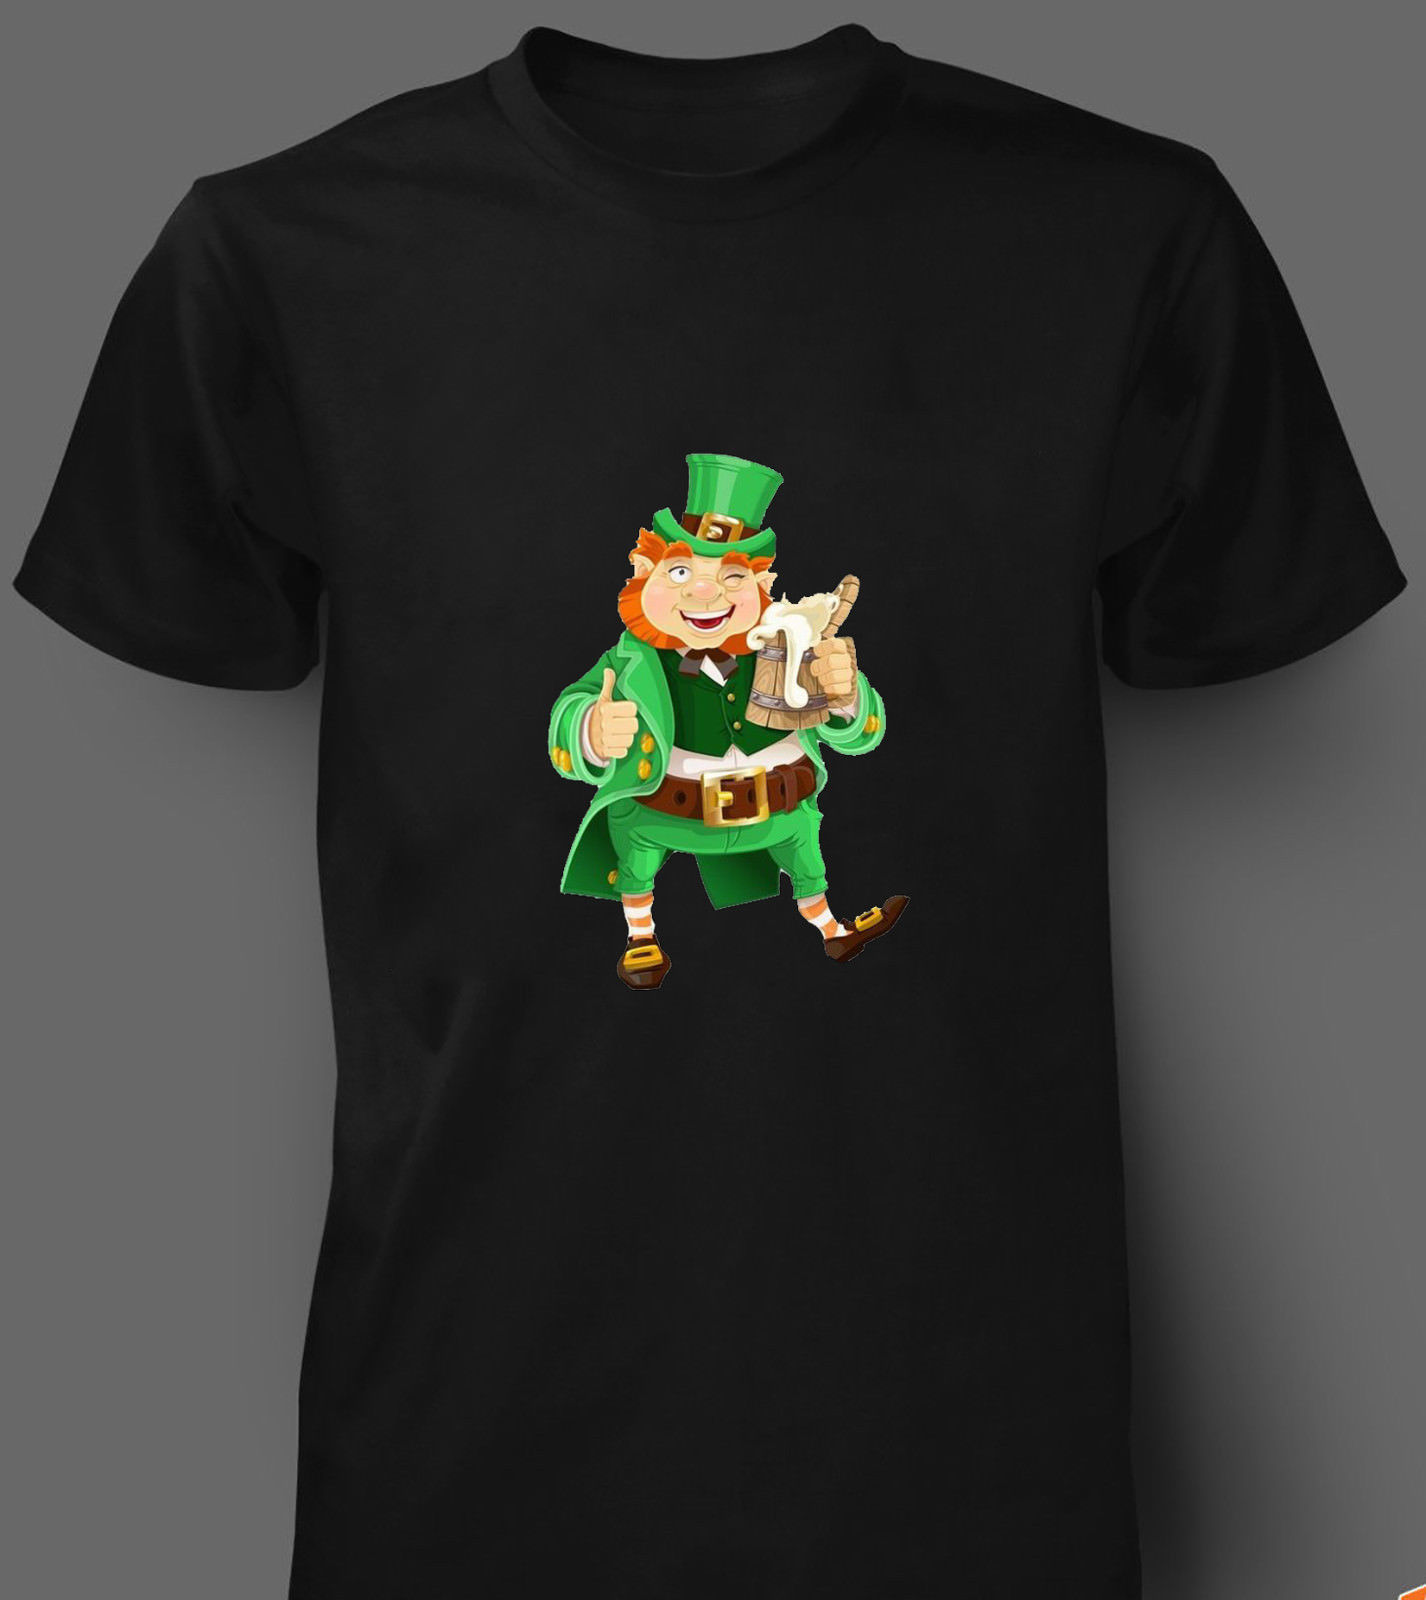 392e2976a St Patricks Day T Shirt leprechaun Ireland Shamrock Paddys Day Men Women  kids New T Shirts Funny Tops Tee New Unisex Funny Tops-in T-Shirts from  Men's ...